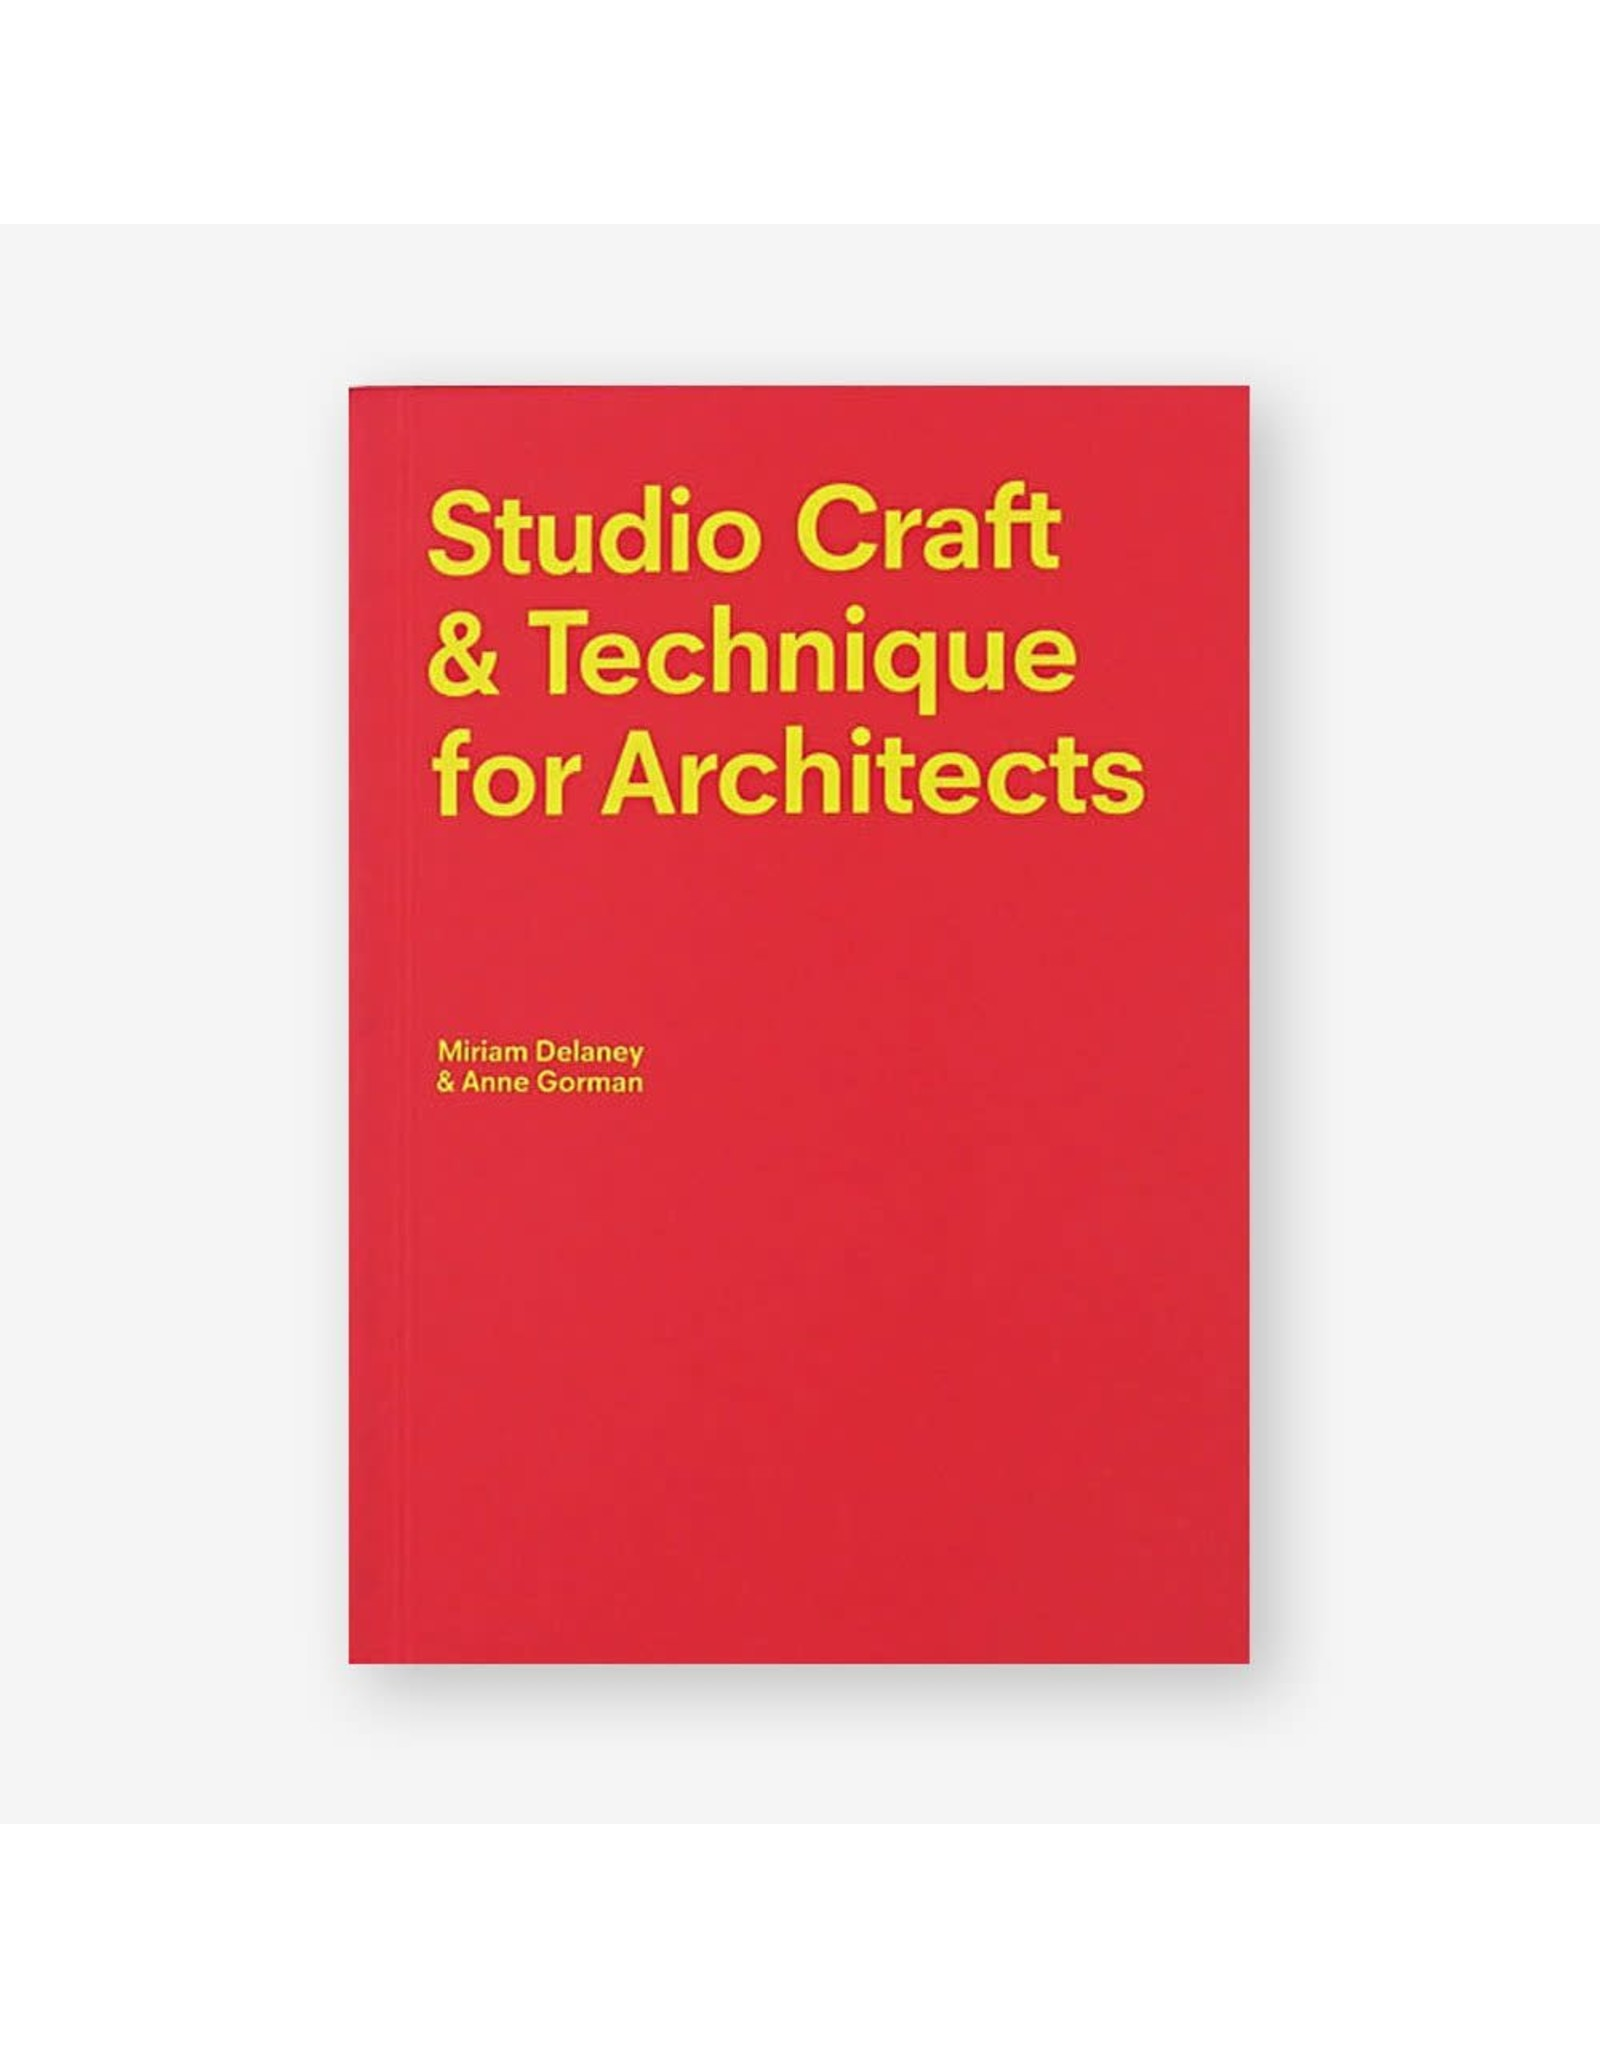 Studio Craft and Technique for Architects